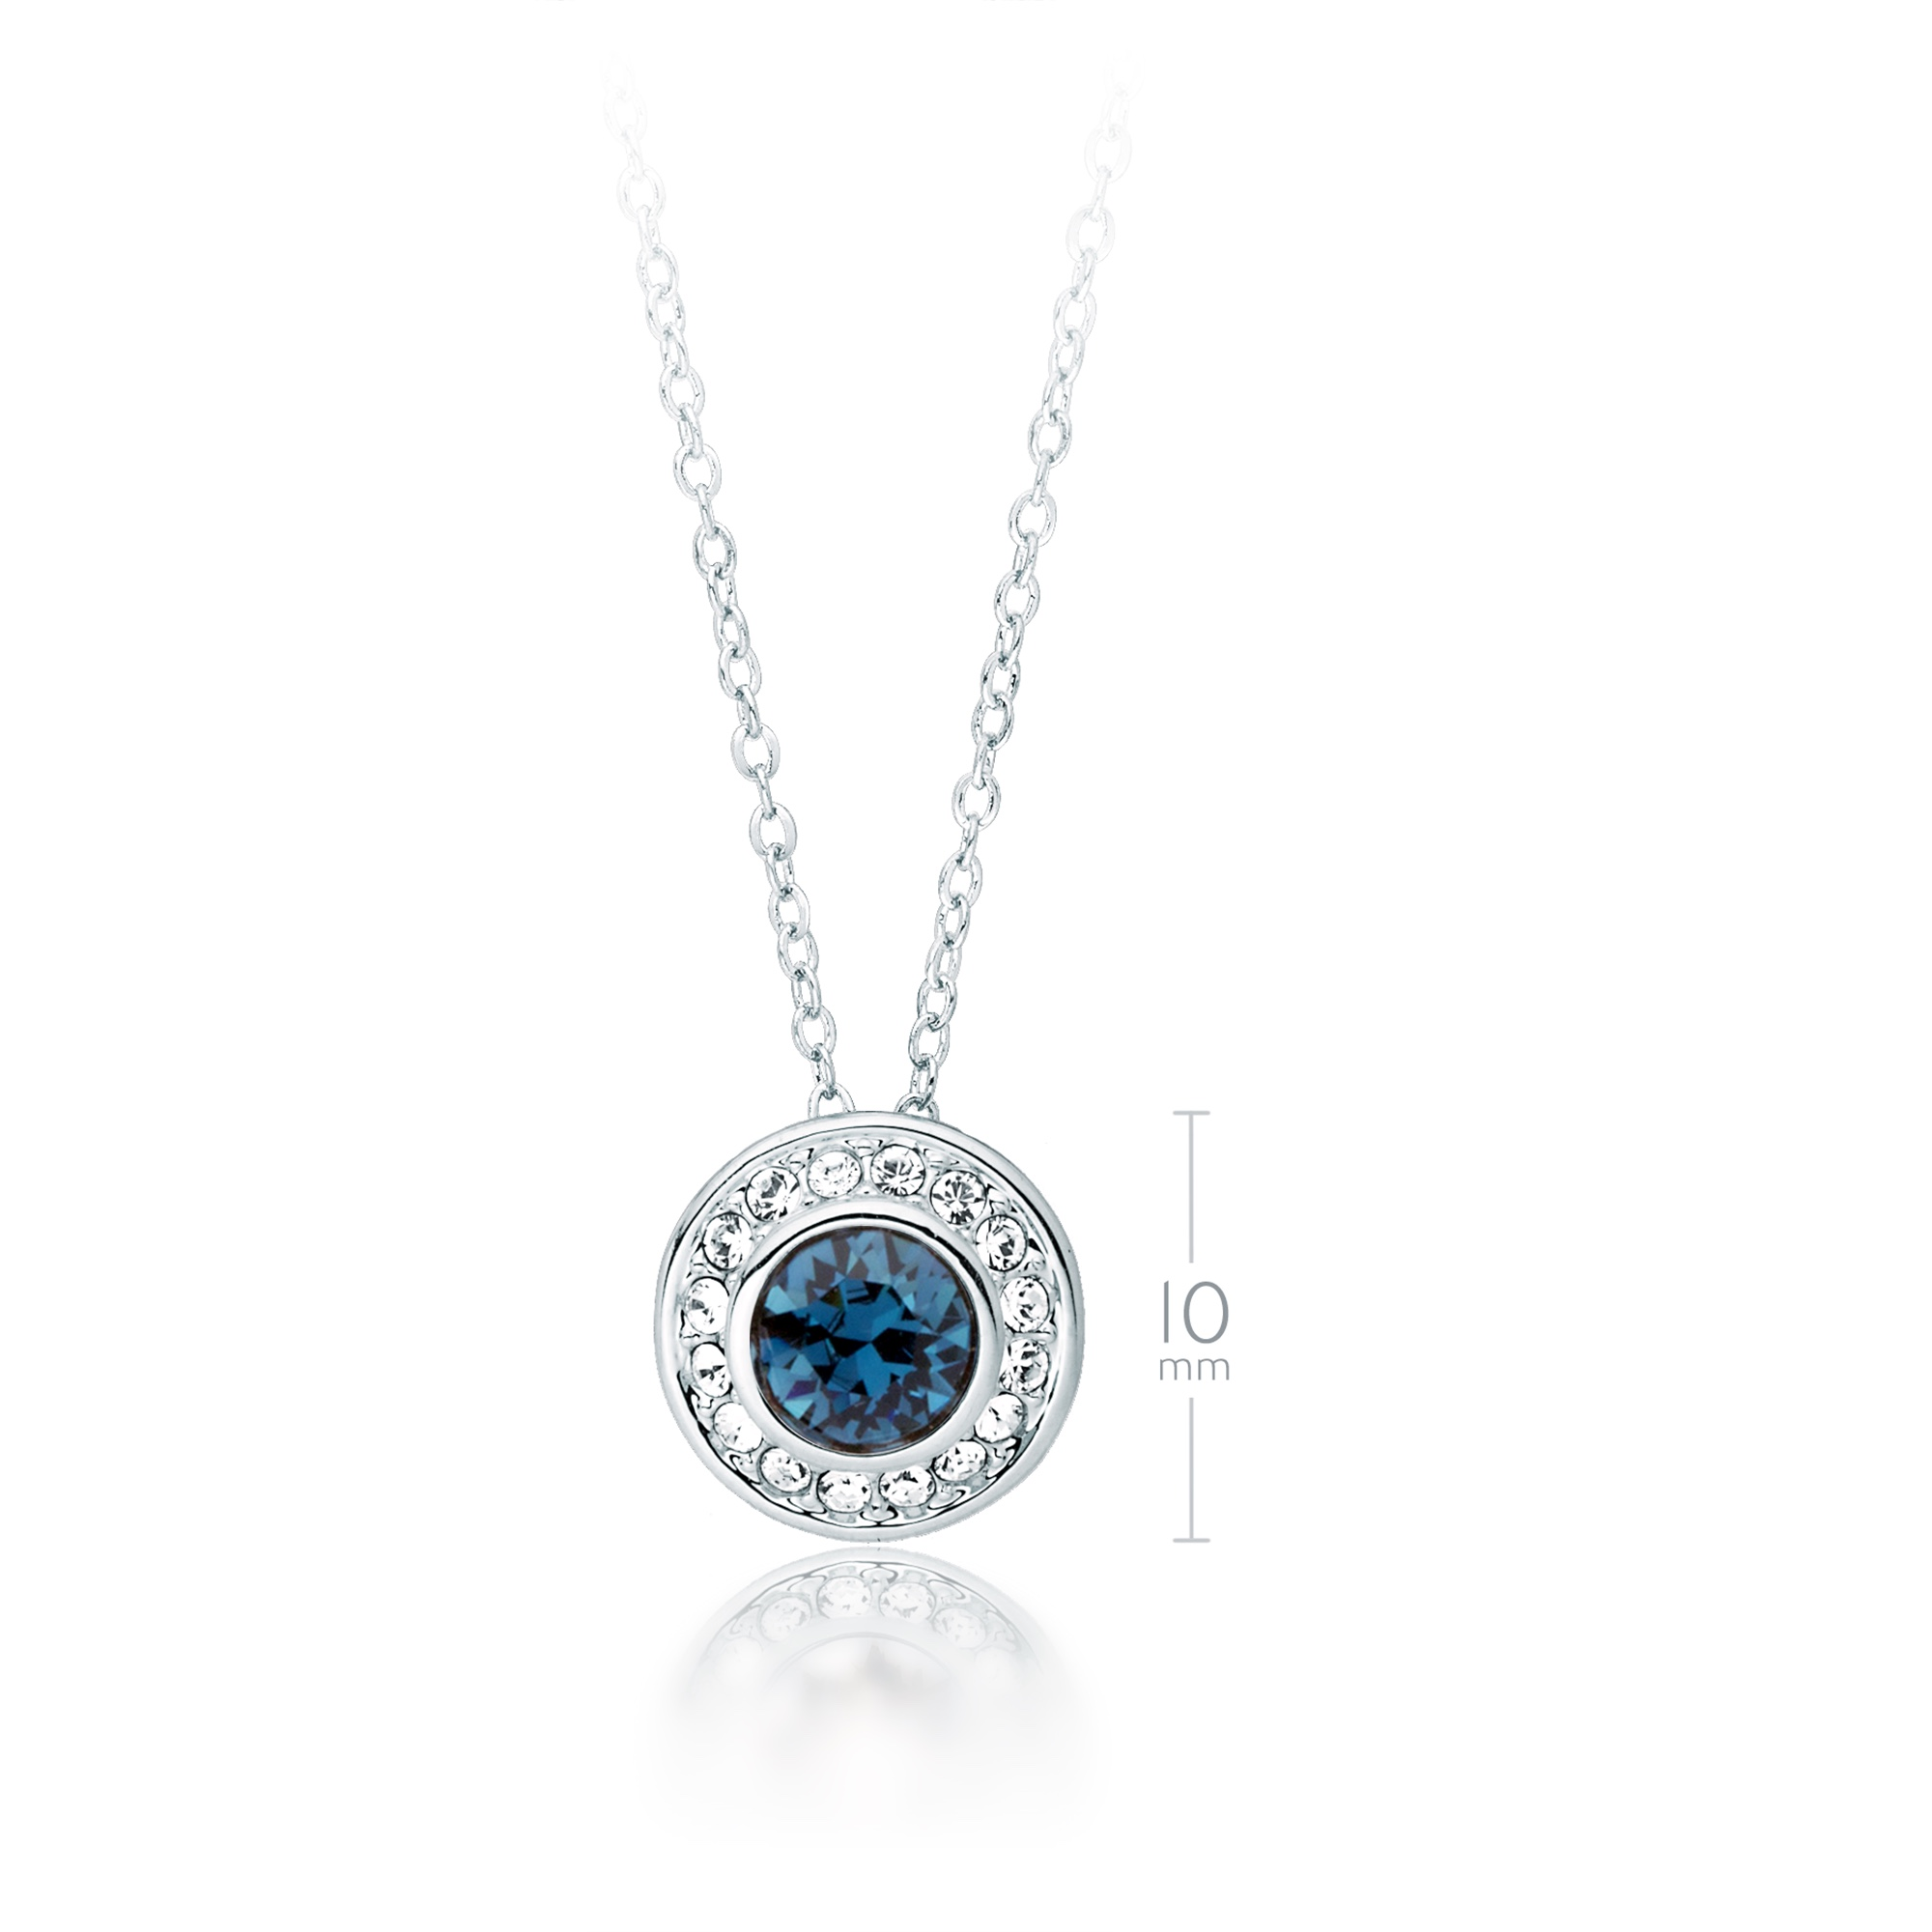 b291e0259 Details about MYJS Angelic Pendant Necklace with Montana Blue Swarovski  Crystals WGP Halo